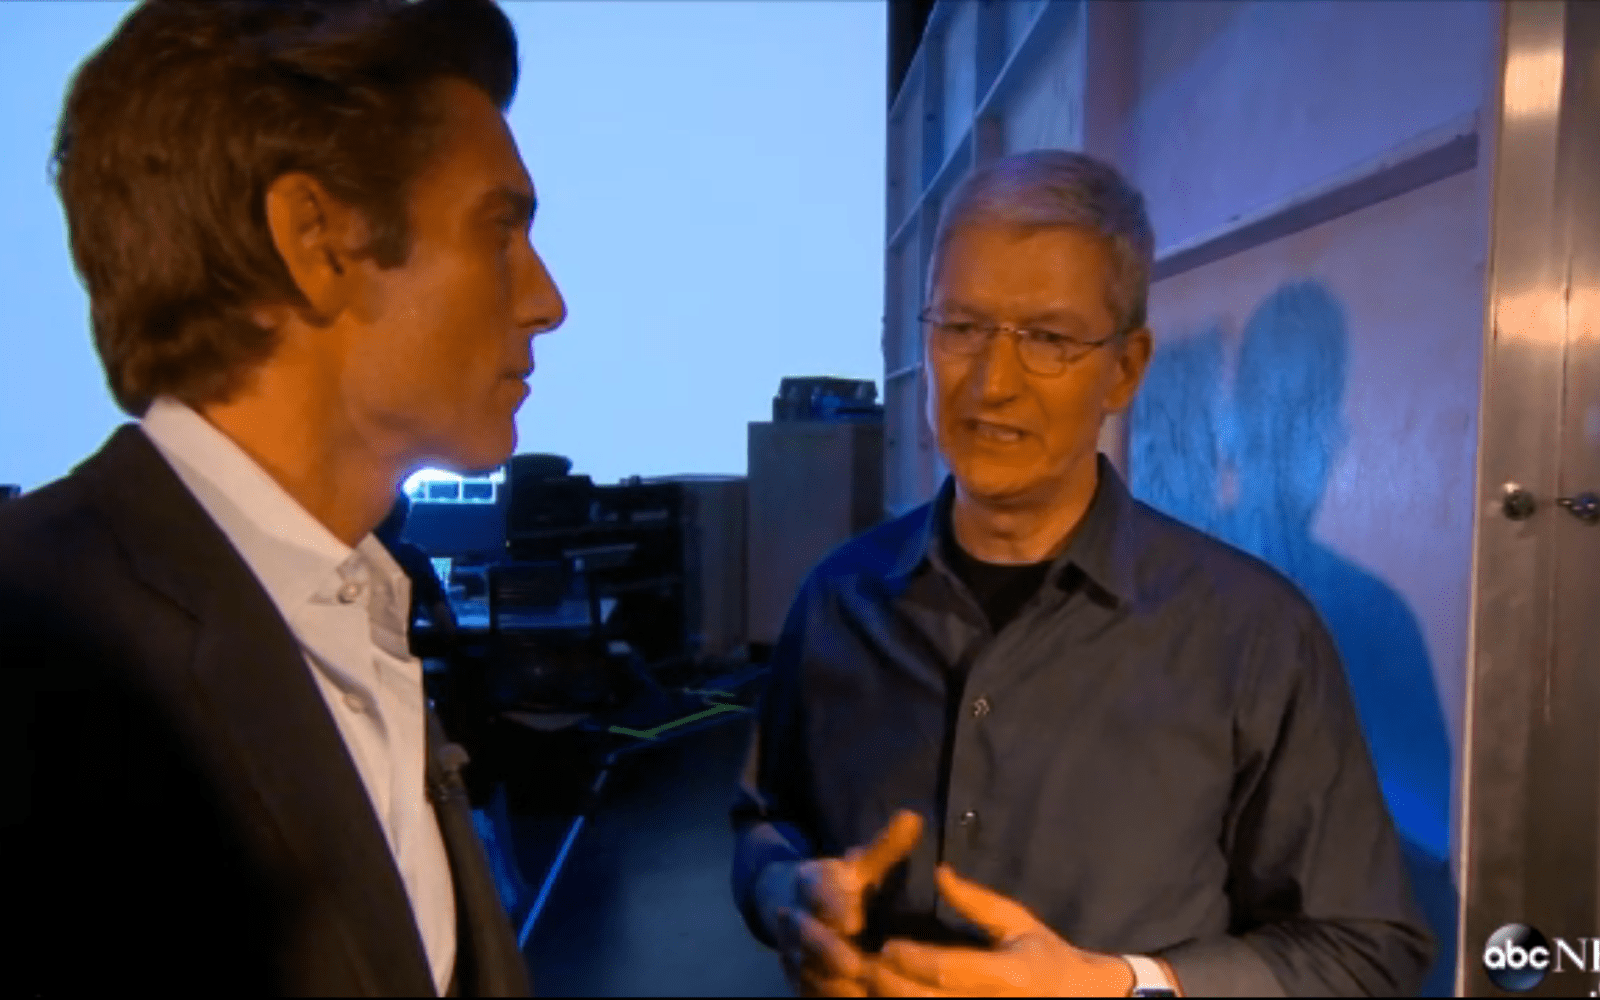 ABC News goes one-on-one with Tim Cook to talk Apple Watch and Steve Jobs